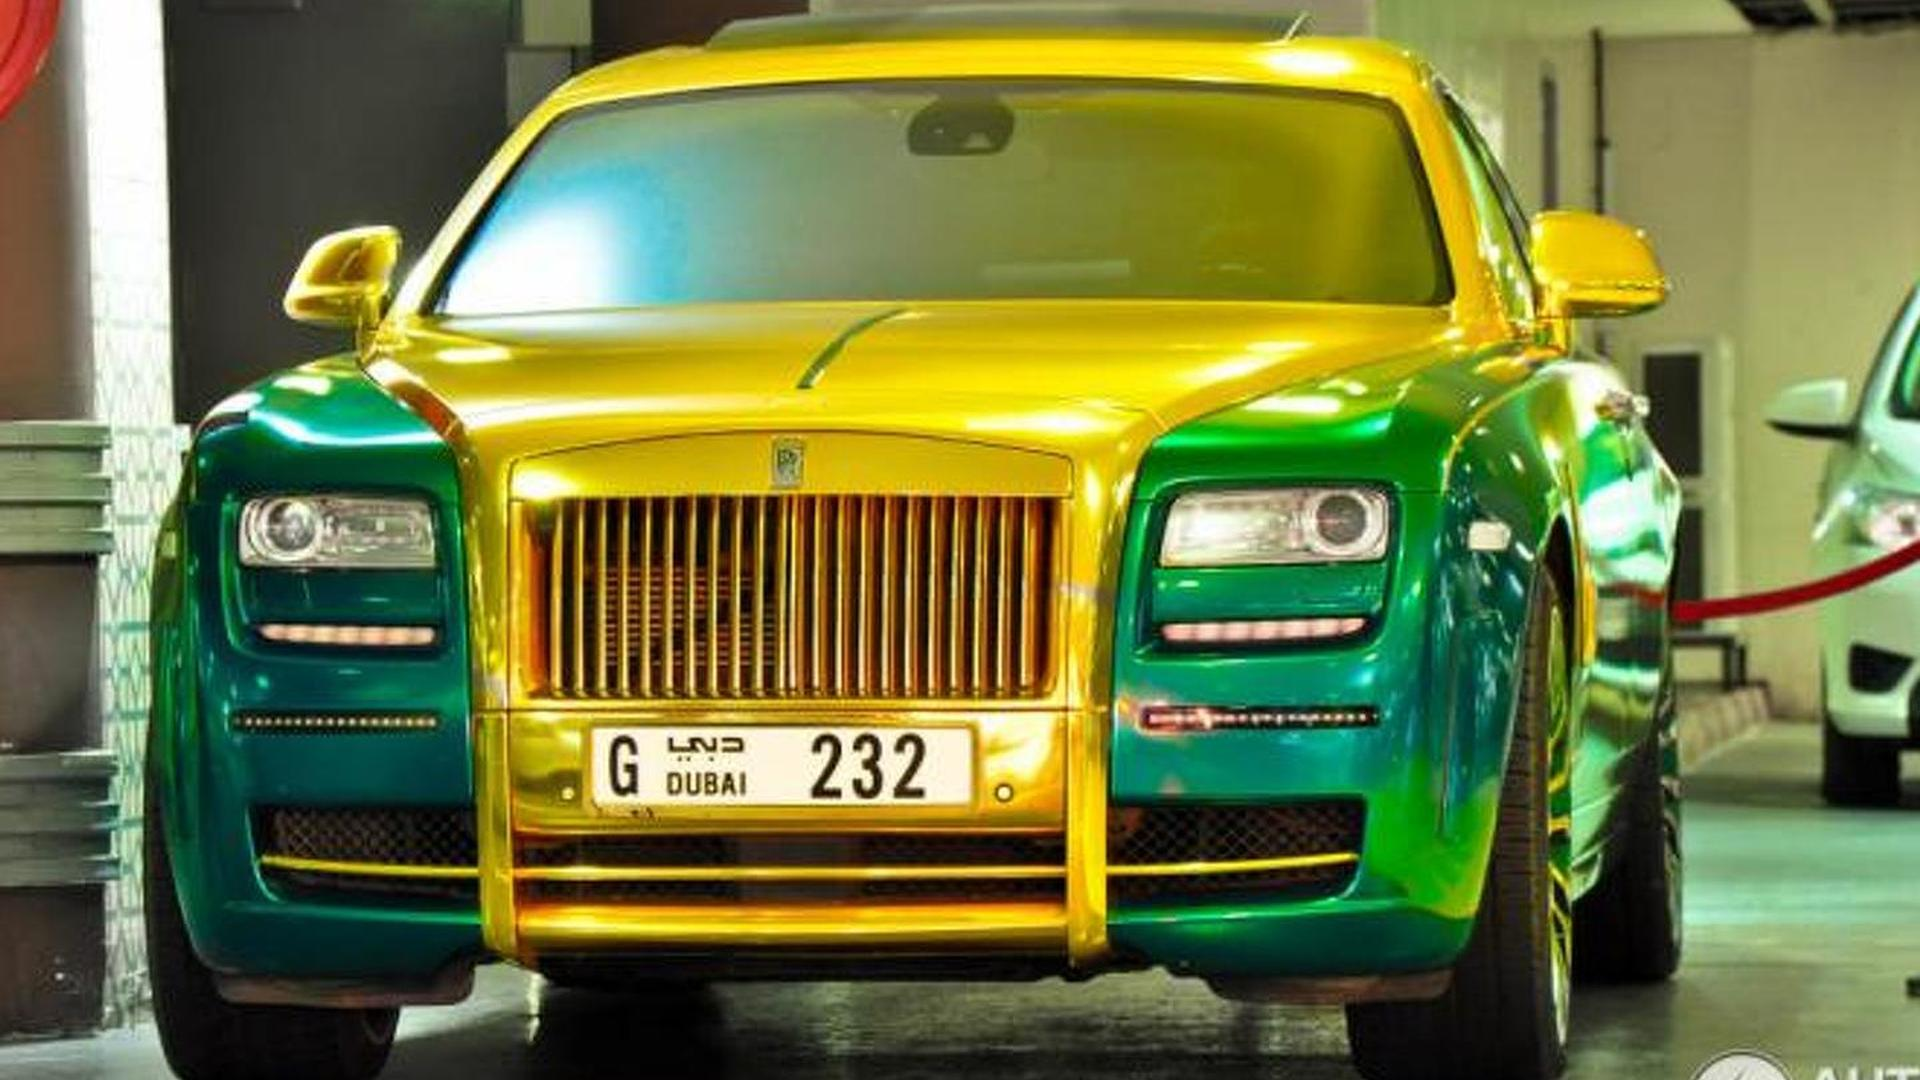 Mansory S Green Gold Rolls Royce Ghost Is Hard To Look At